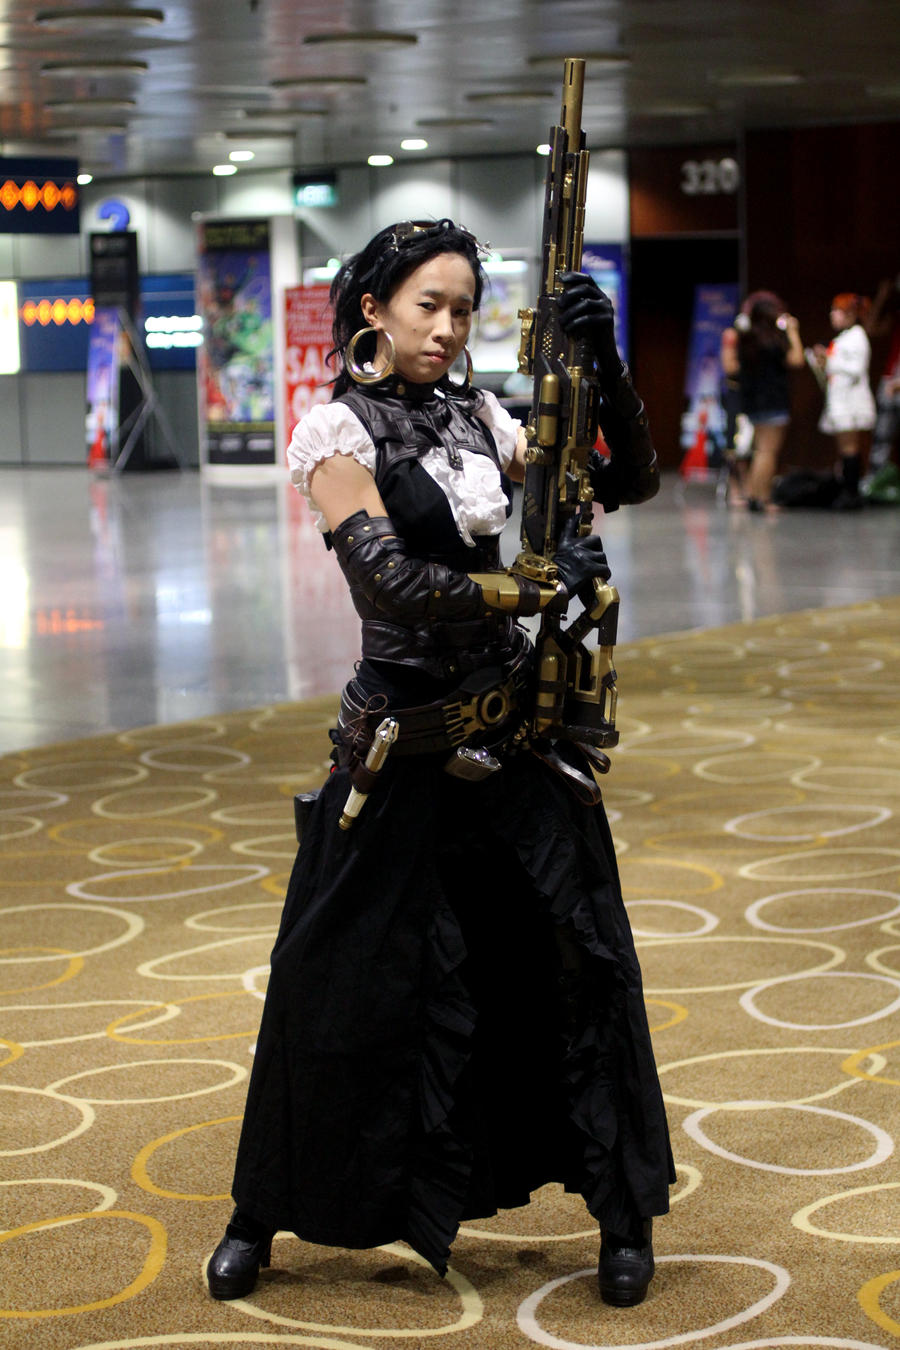 Lady Mechanika in STGCC by LadyAngelus